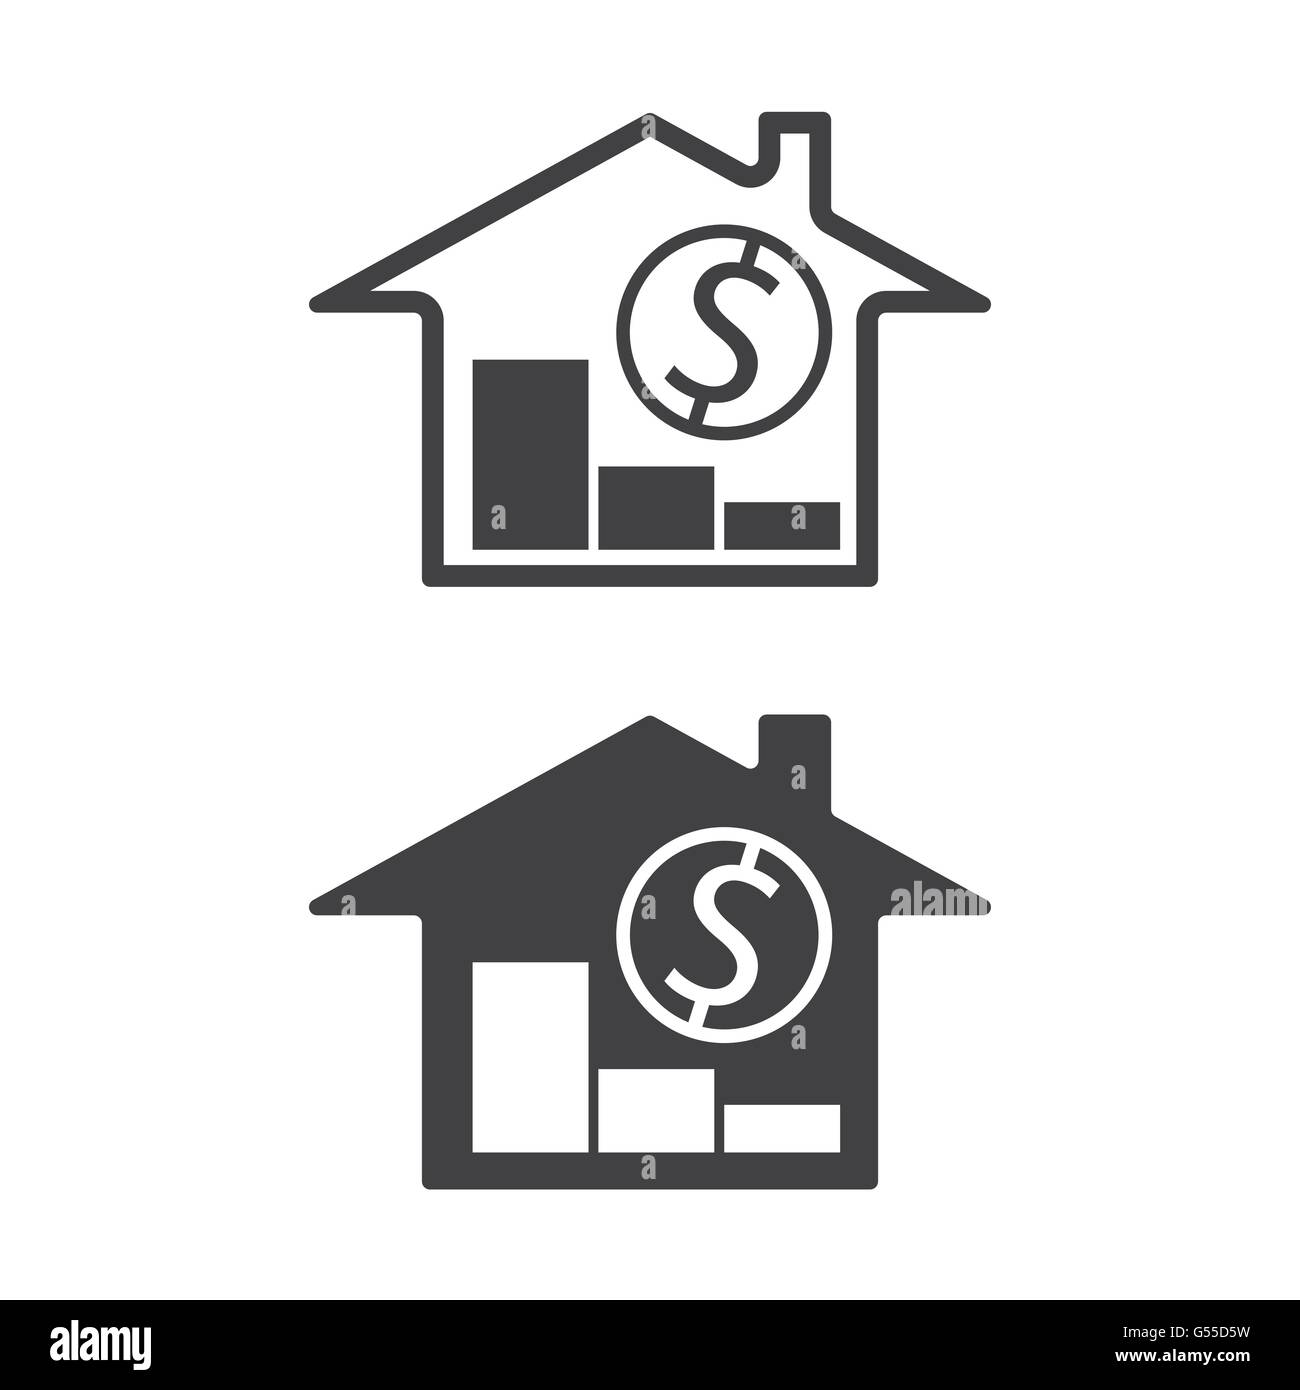 Home Money Symbols With Trend Down Real Estate Property Price Stock